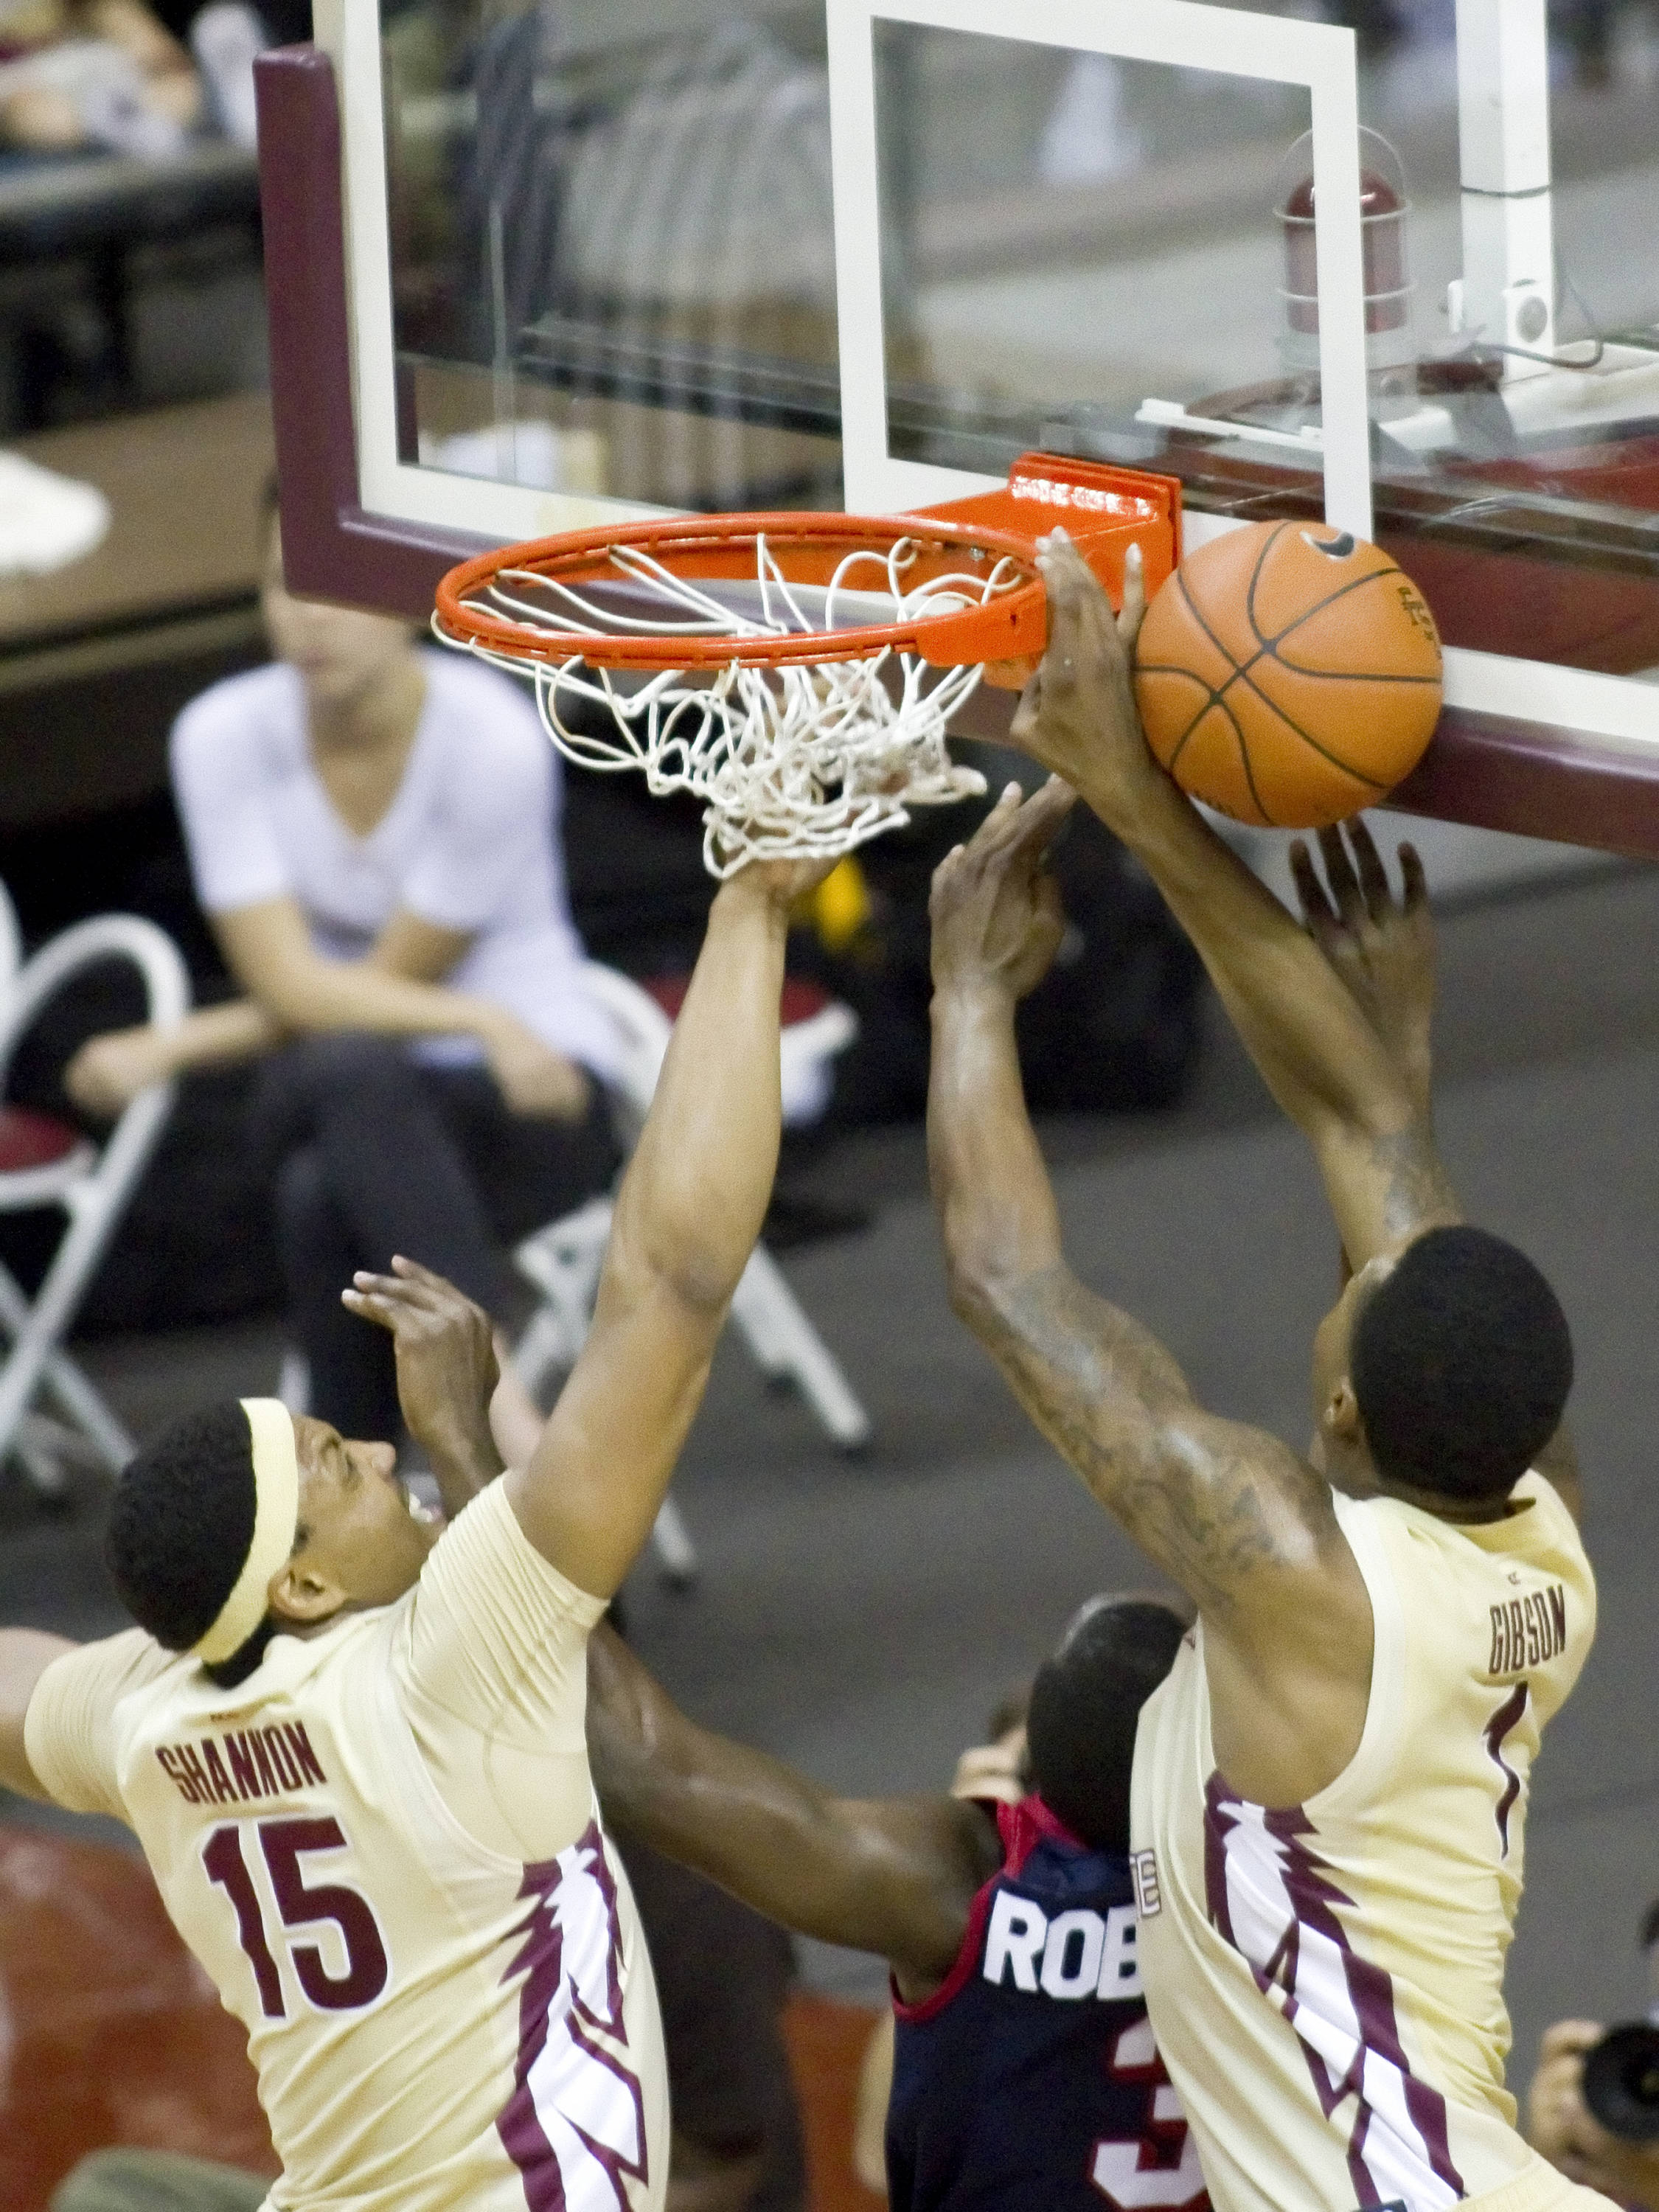 Xavier Gibson (1), Terrance Shannon (15), FSU vs So. Alabama, 11/20/2011